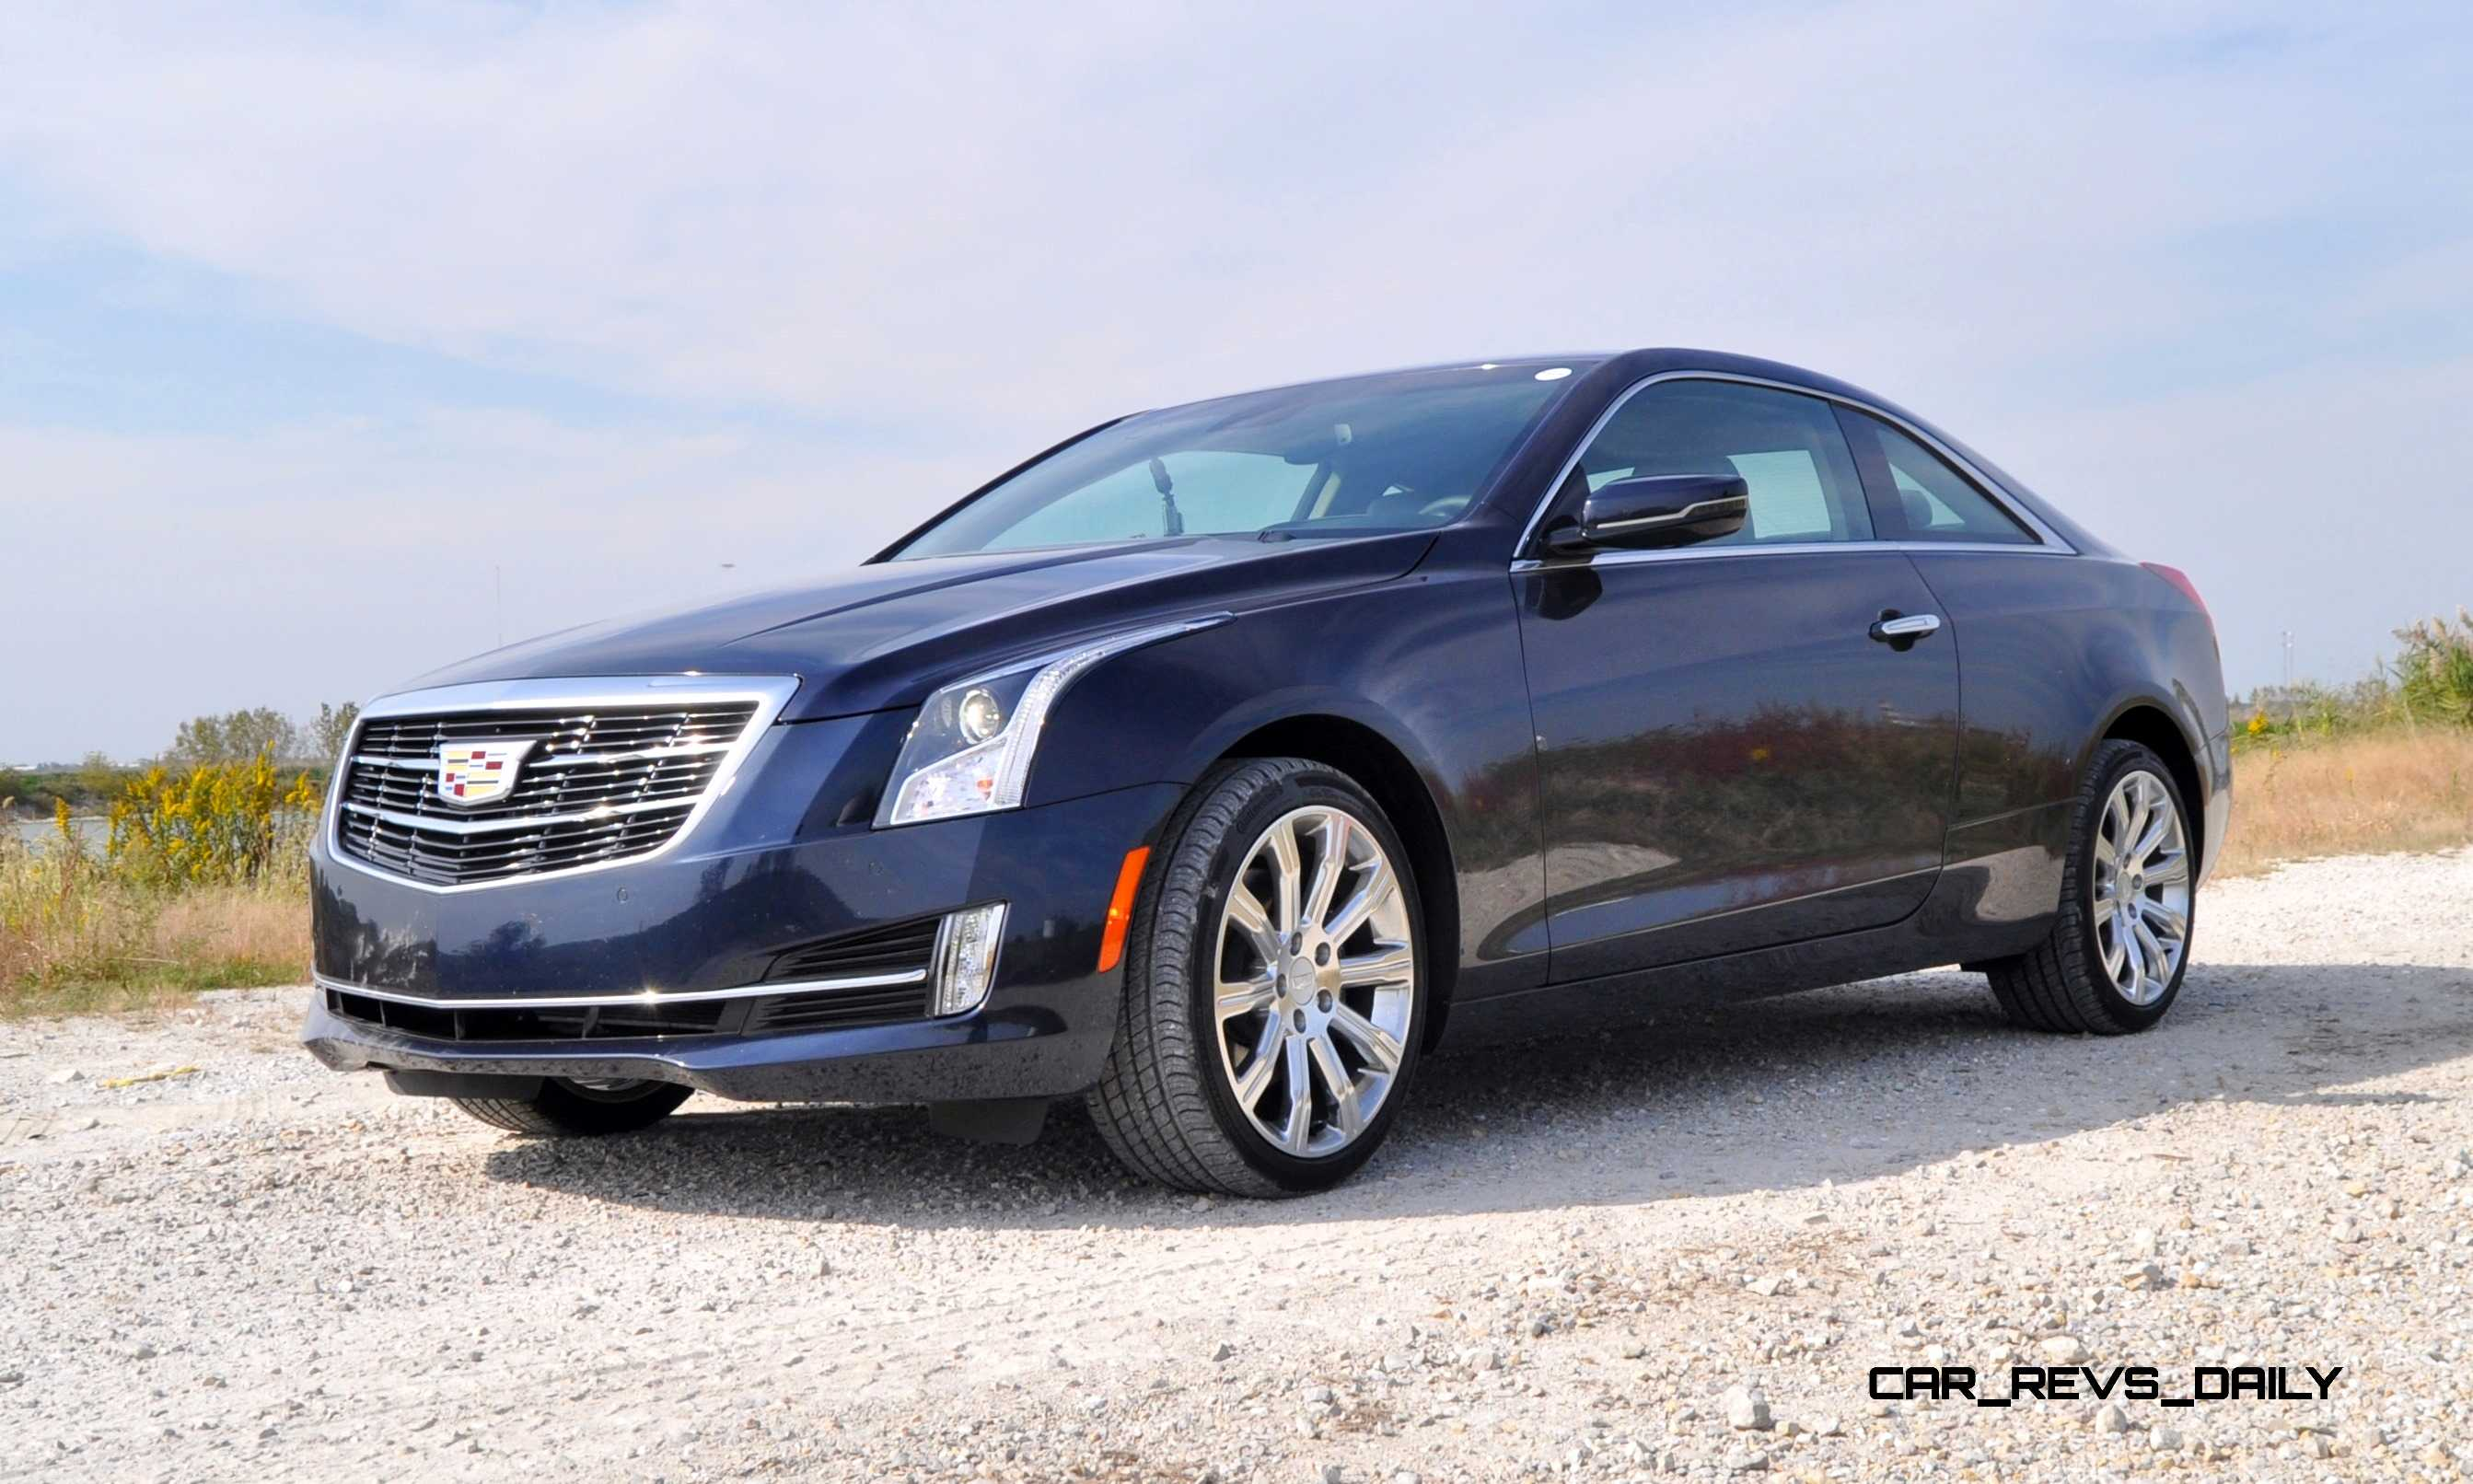 first drive review 2015 cadillac ats coupe 3 6 awd drives well but lacks sex appeal at. Black Bedroom Furniture Sets. Home Design Ideas